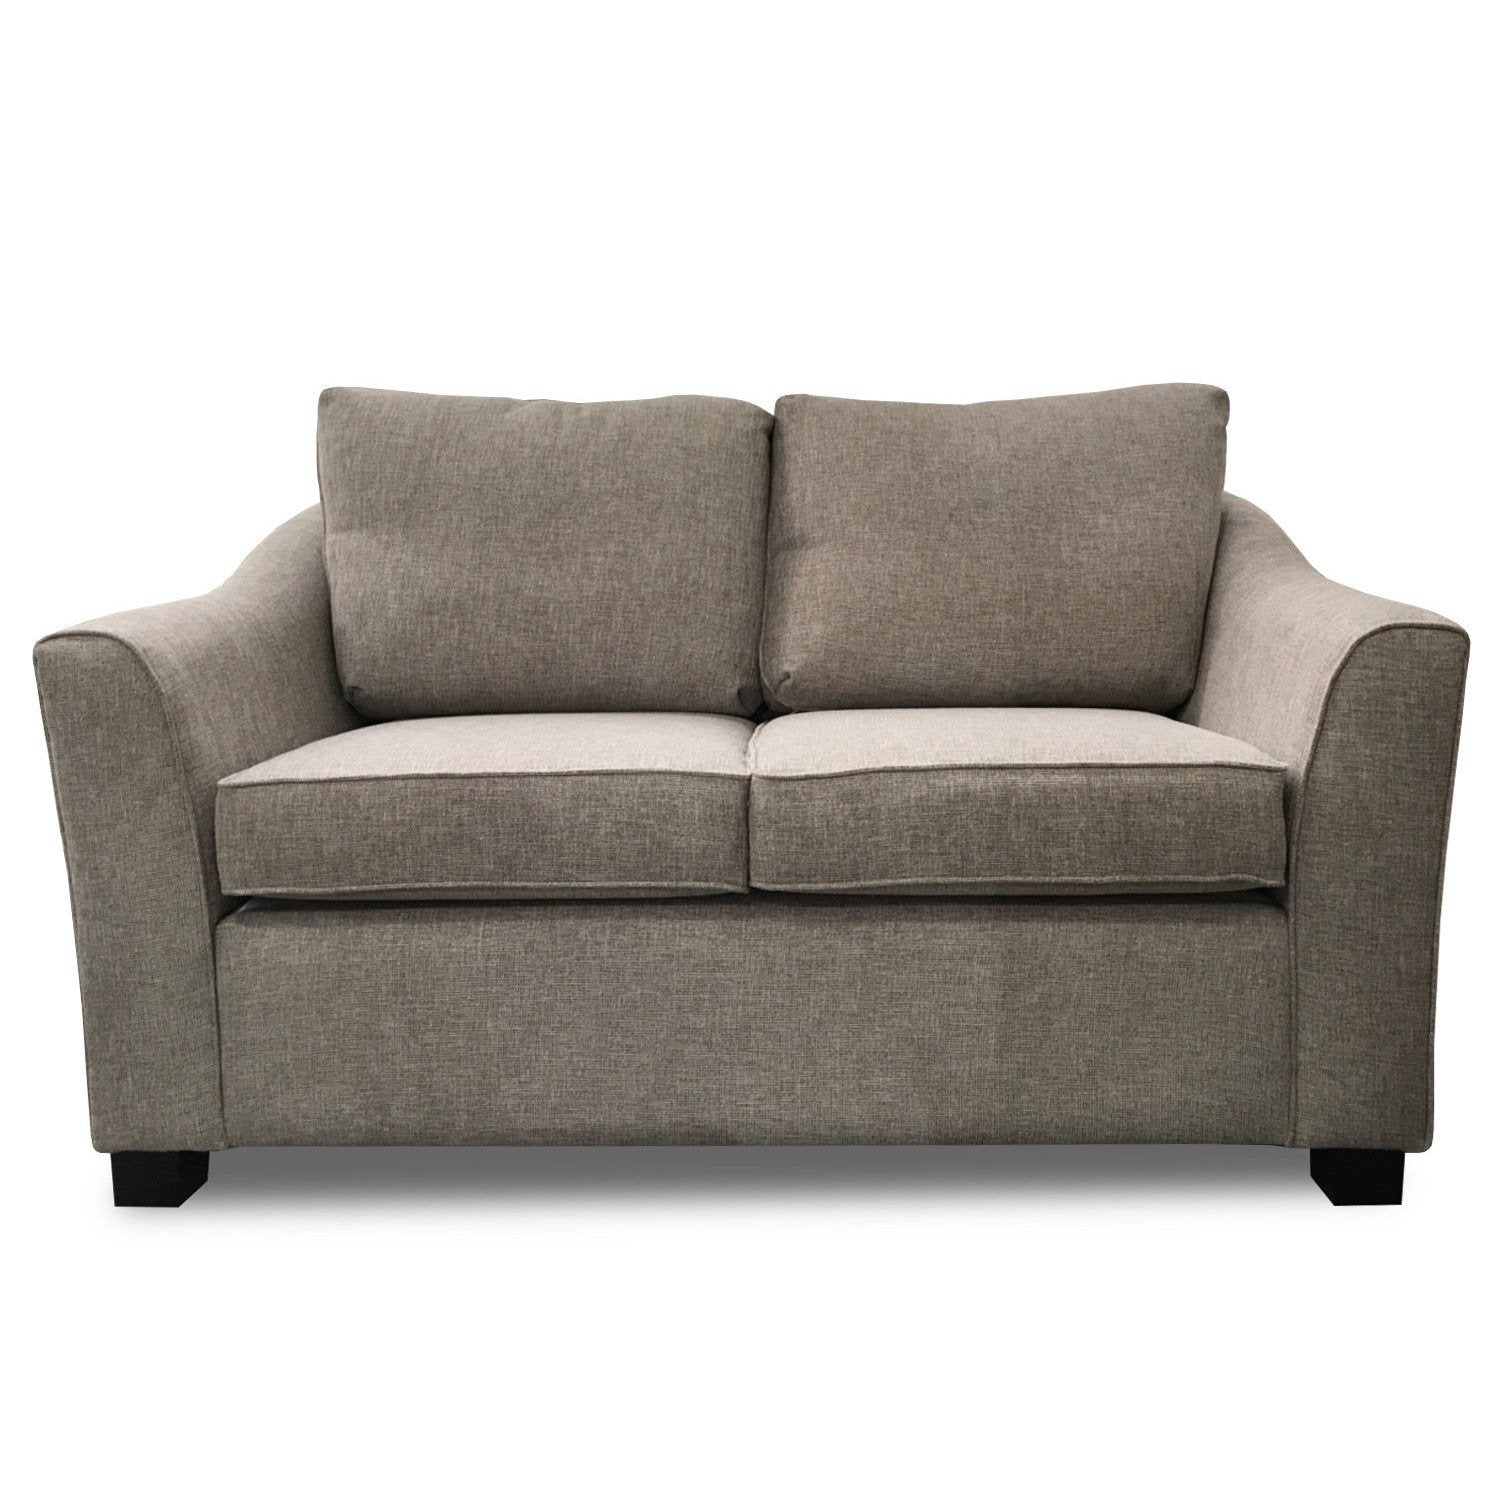 Henly 2.5 Seater Sofa